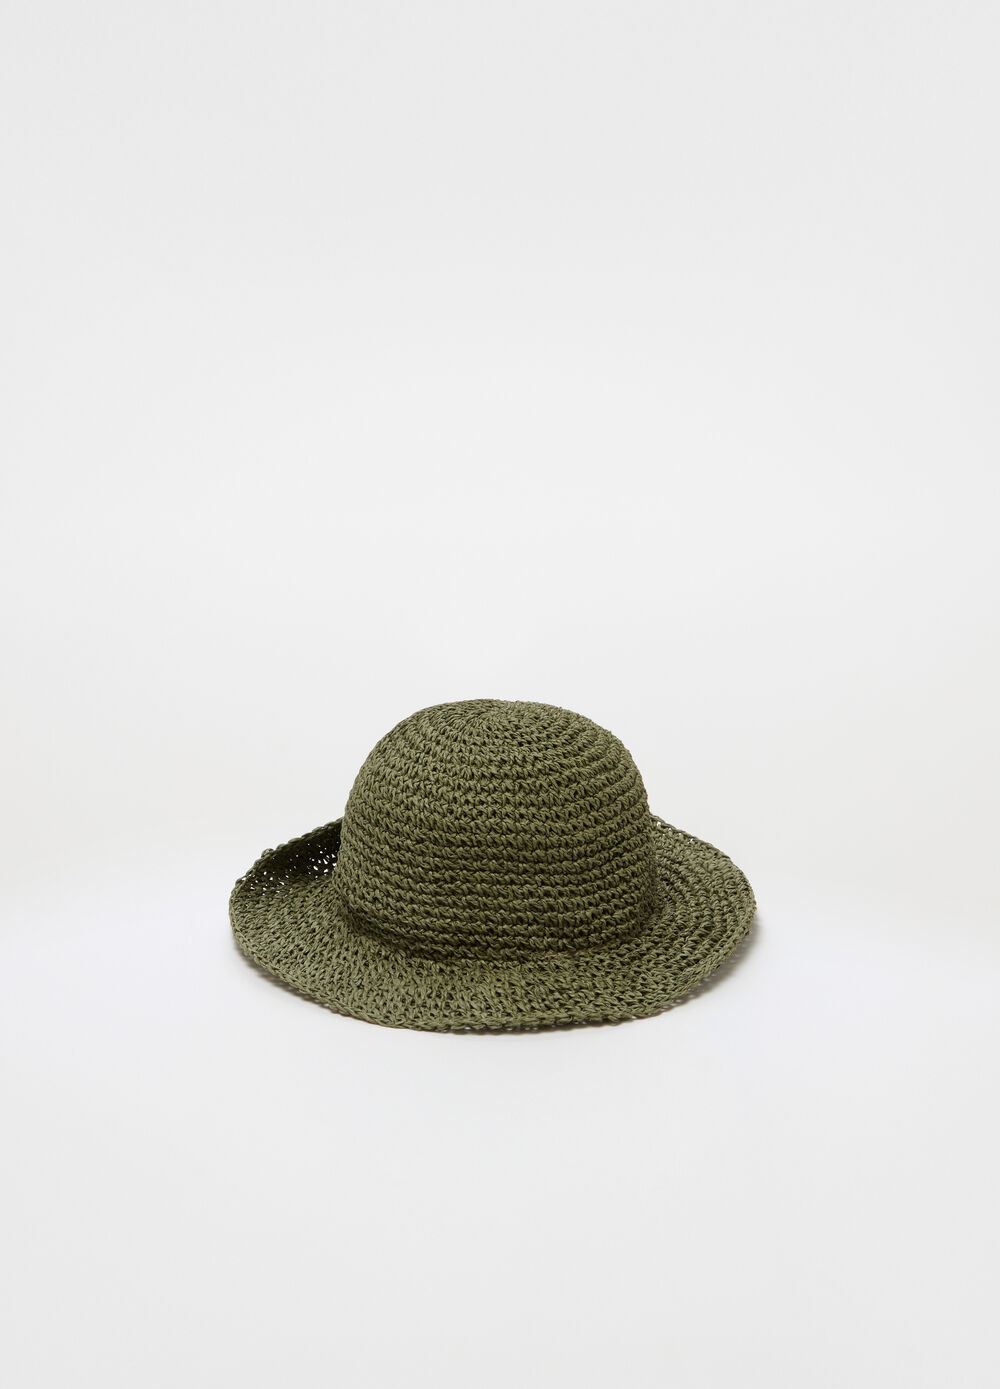 Fedora hat with striped weave